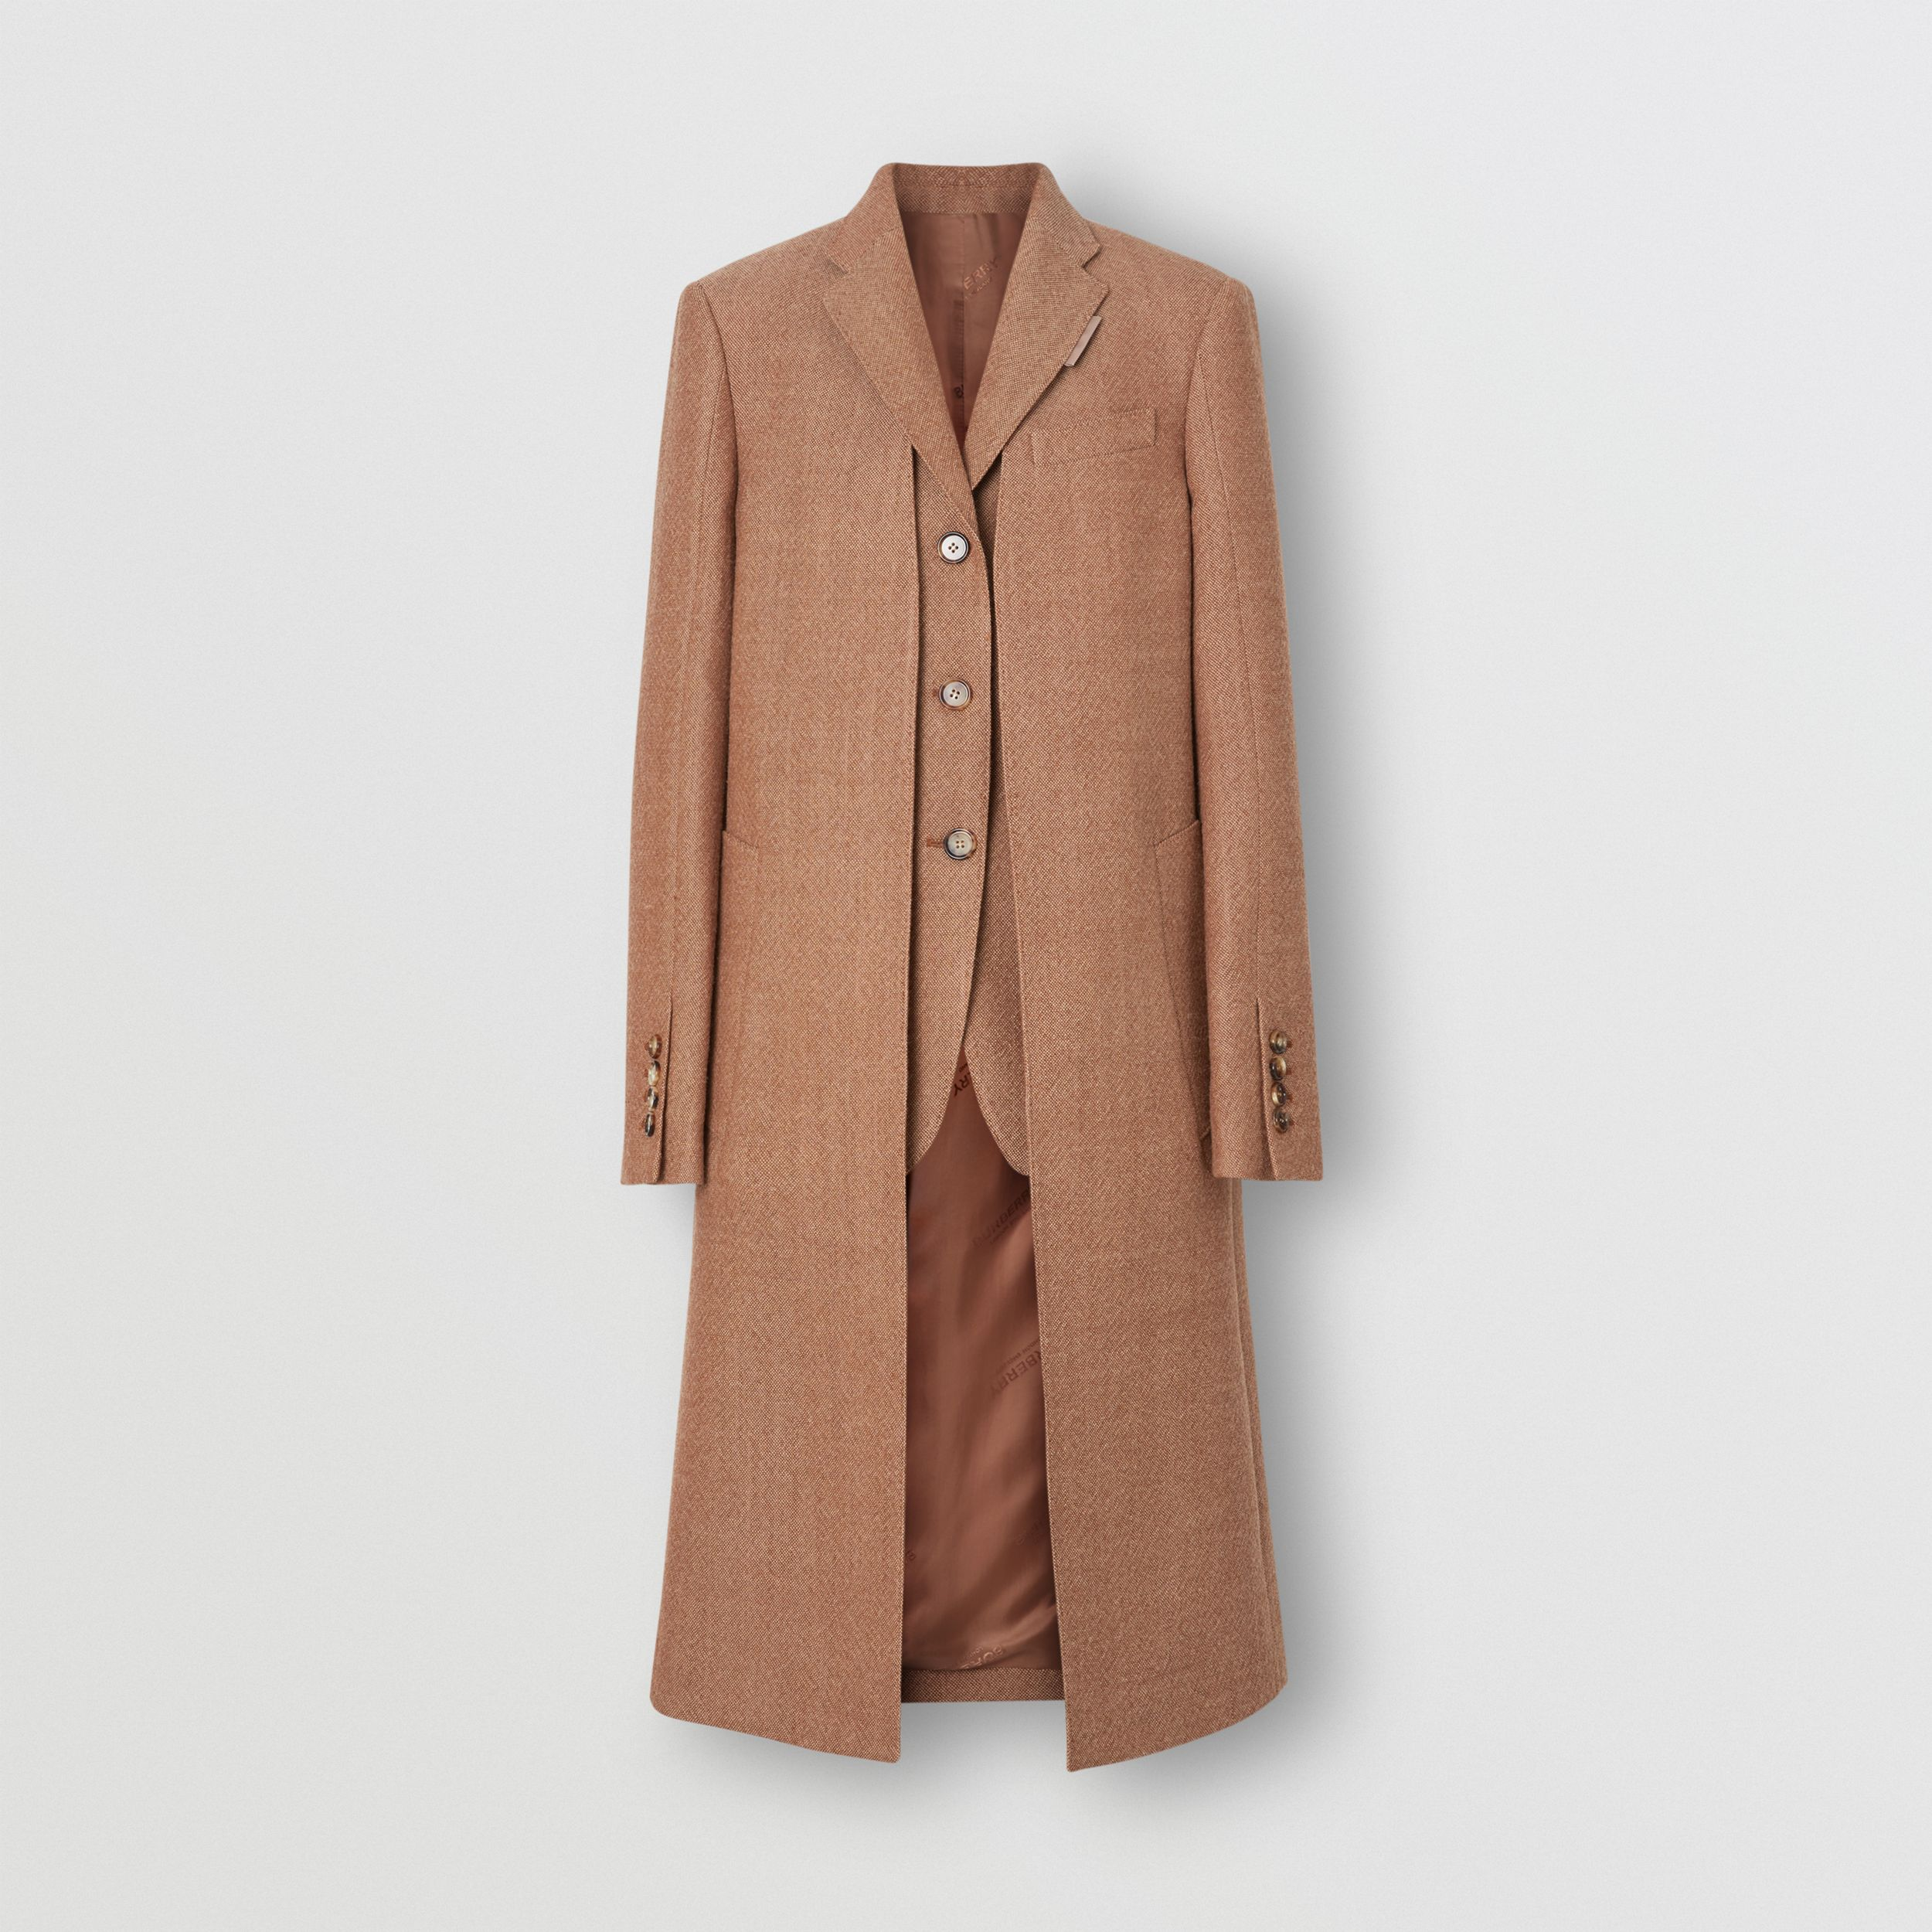 Waistcoat Detail Wool Tailored Coat in Bronze - Women | Burberry - 4